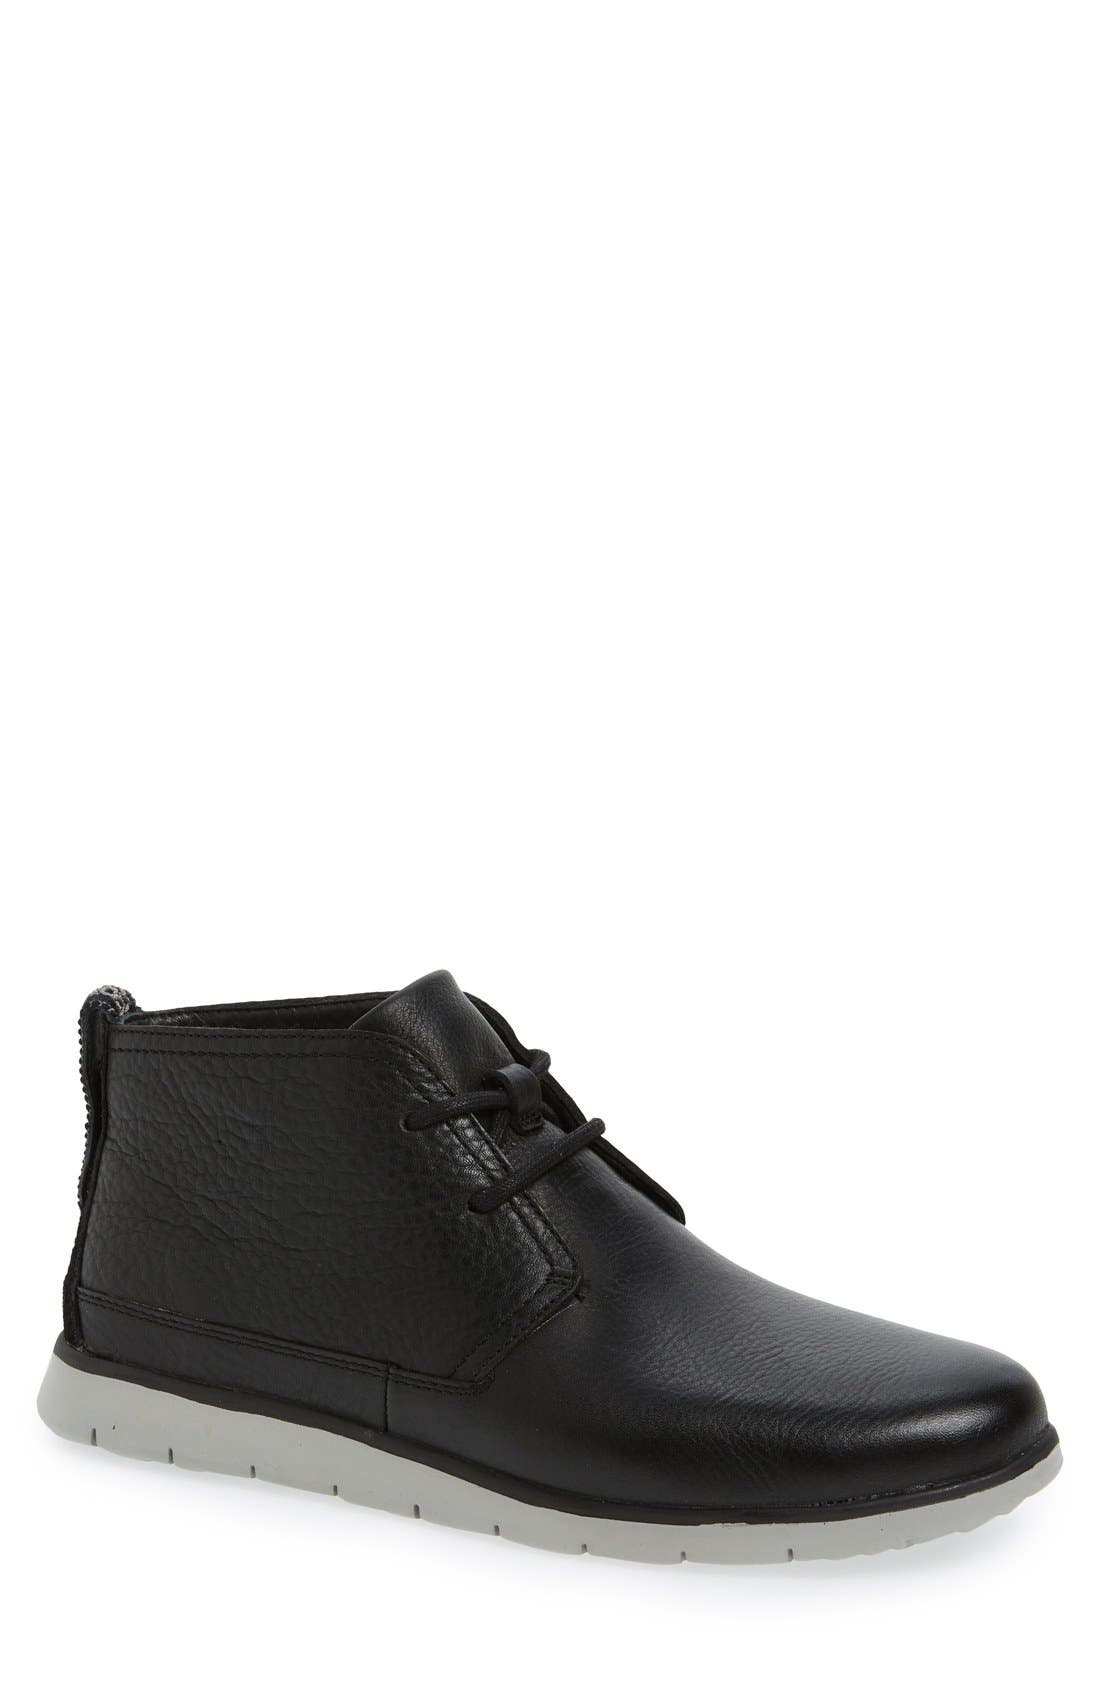 Alternate Image 1 Selected - UGG® Freamon Chukka Boot (Men)